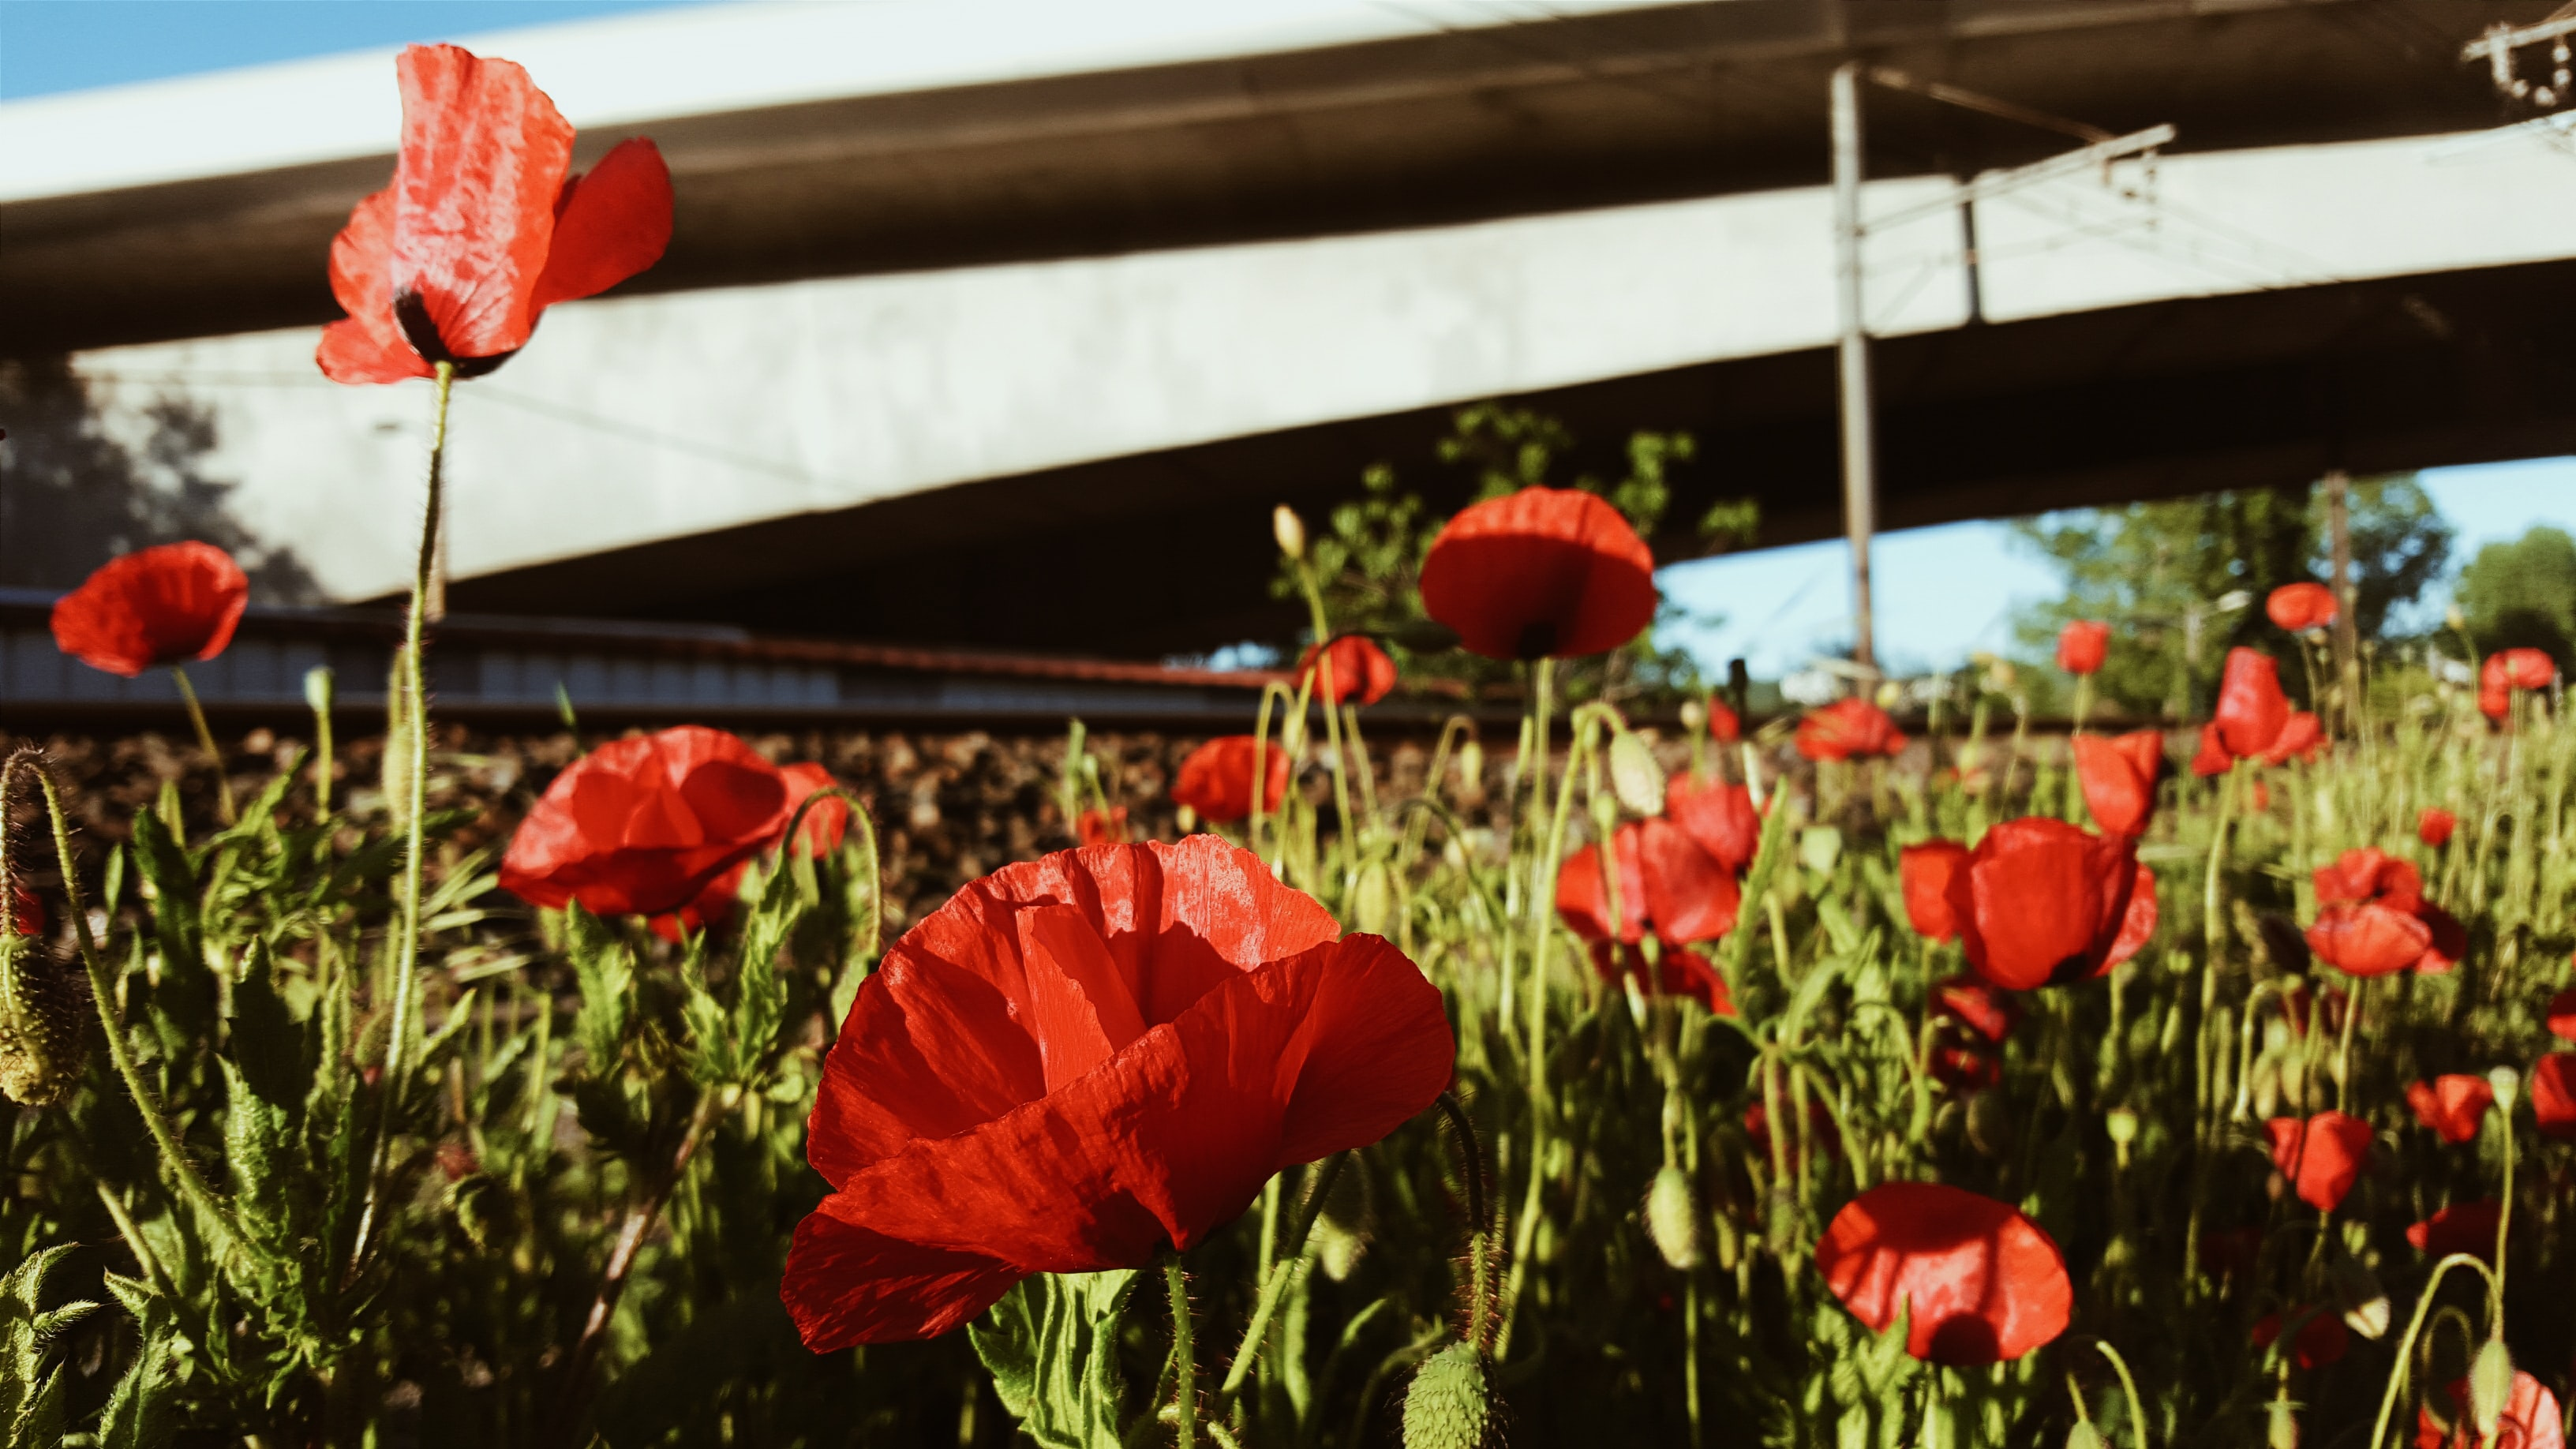 A field of red poppies near a large concrete structure